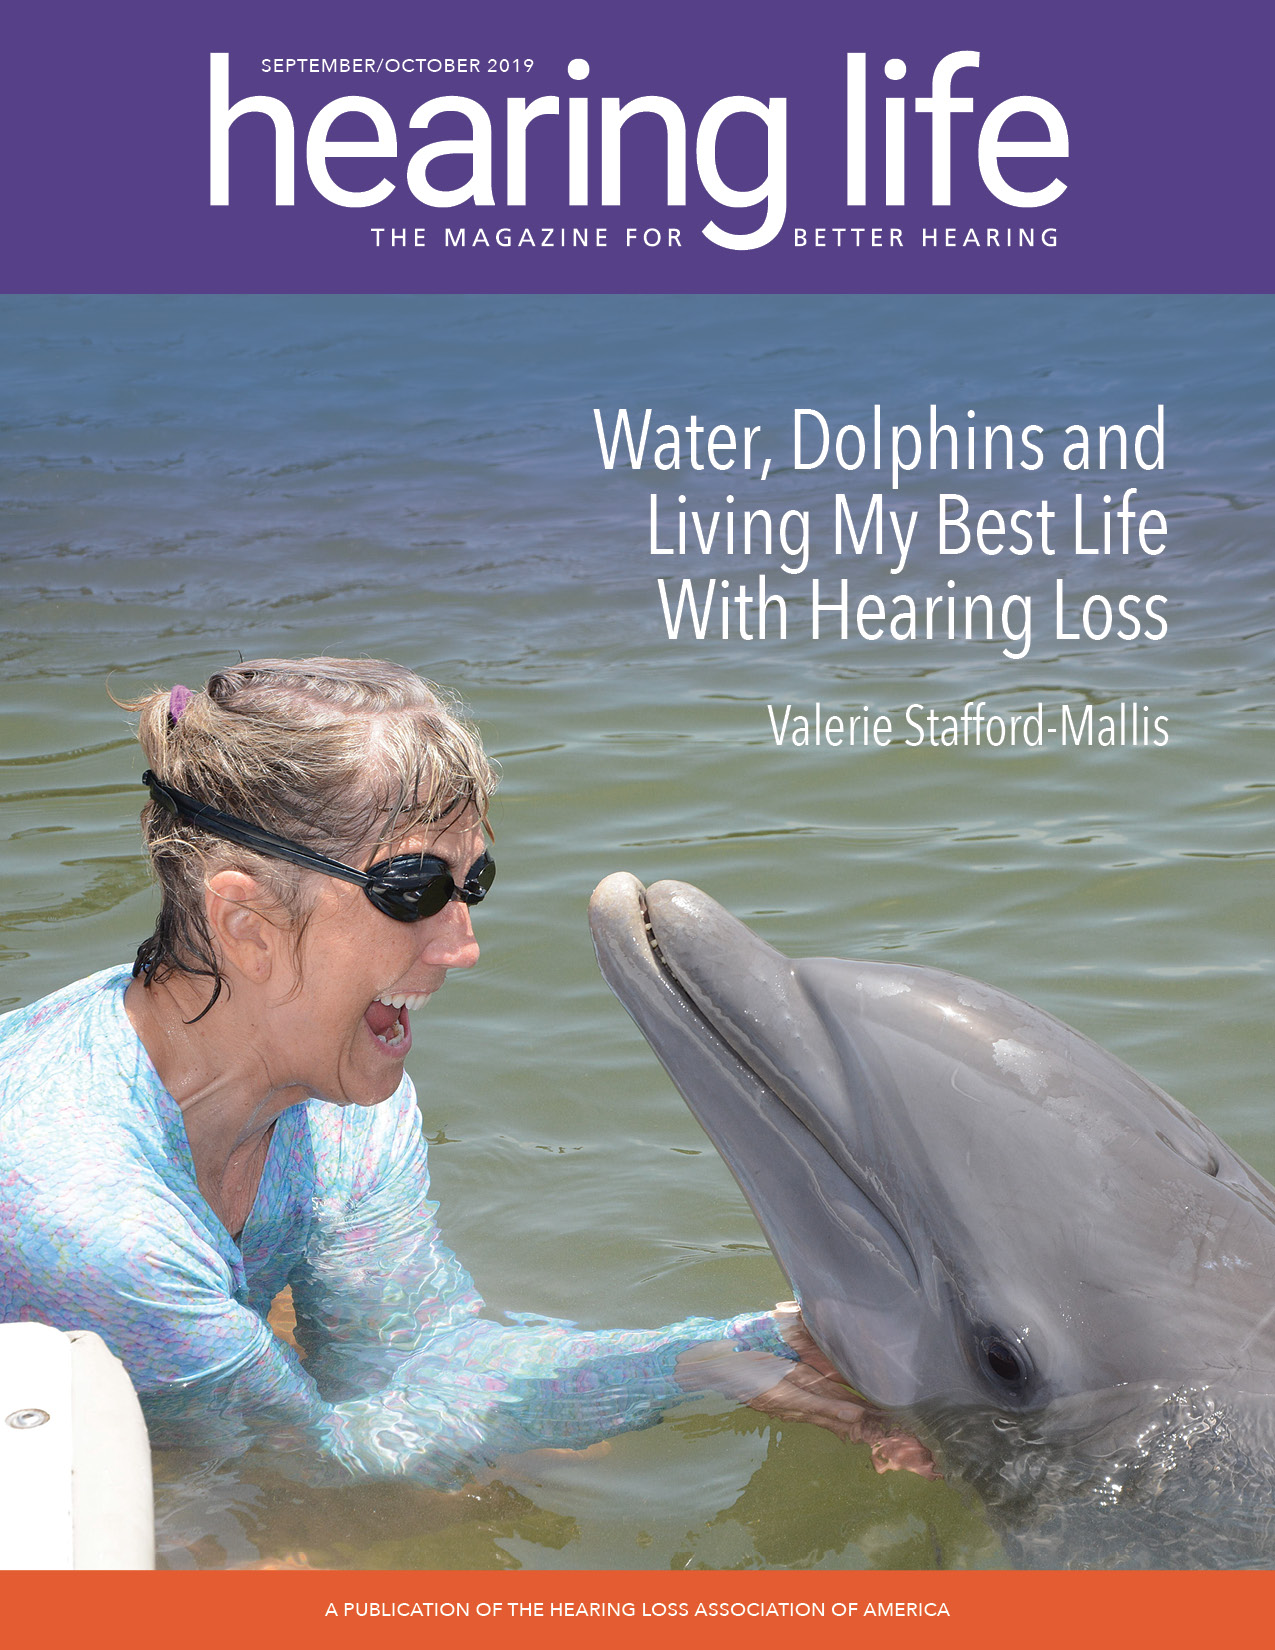 HLAA Hearing Life 2019 September/October Cover with Valerie Stafford-Mallis in the water with a dolphin